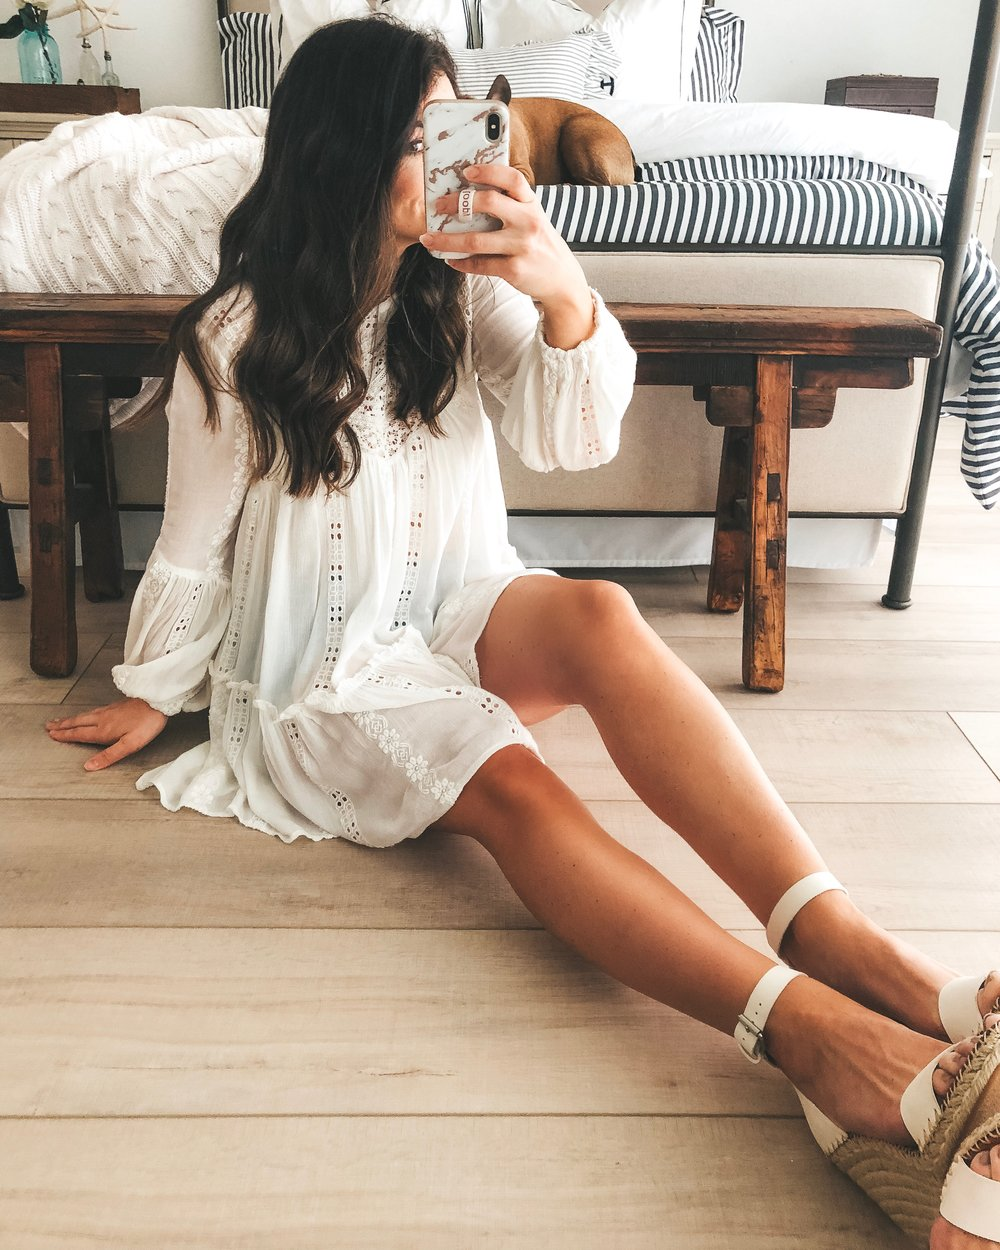 free people kiss kiss tunic, agolde parker jean shorts, and dolce vita noor wedge sandals.